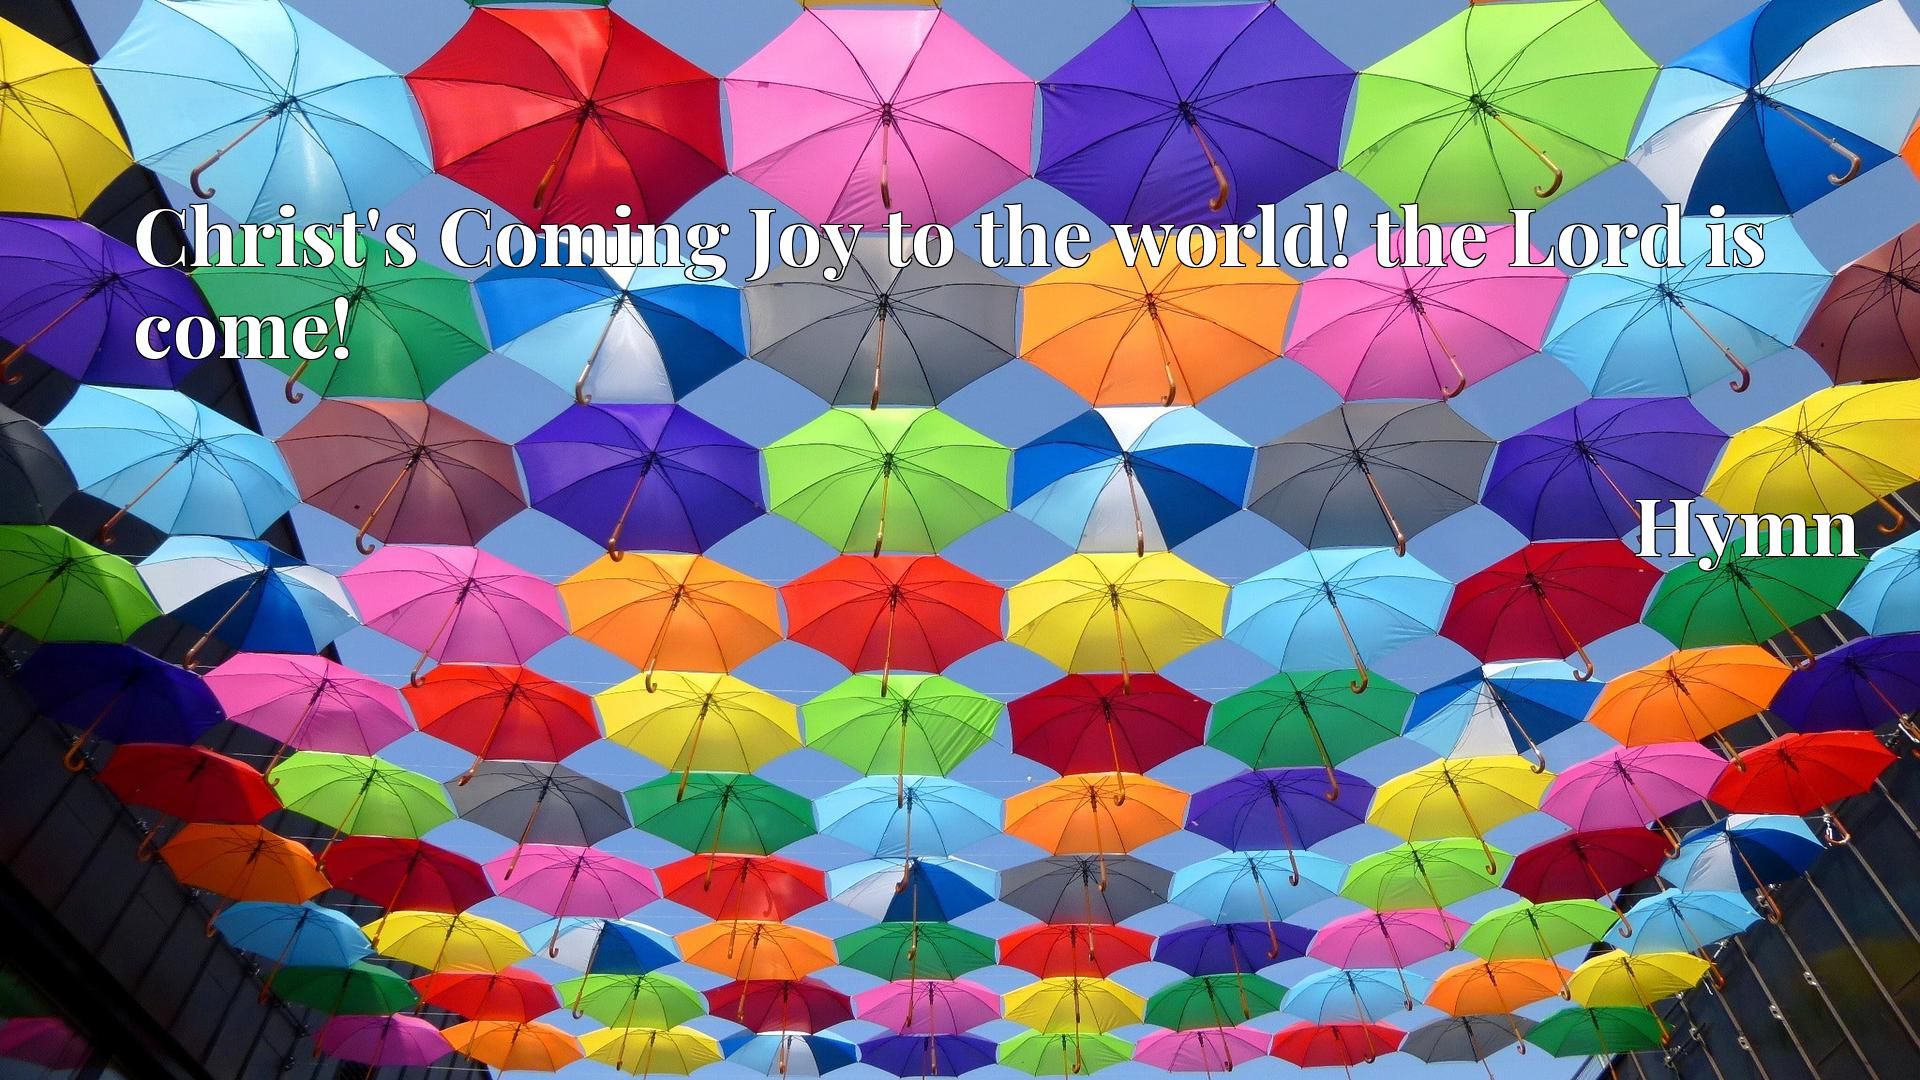 Christ's Coming Joy to the world! the Lord is come! Hymn